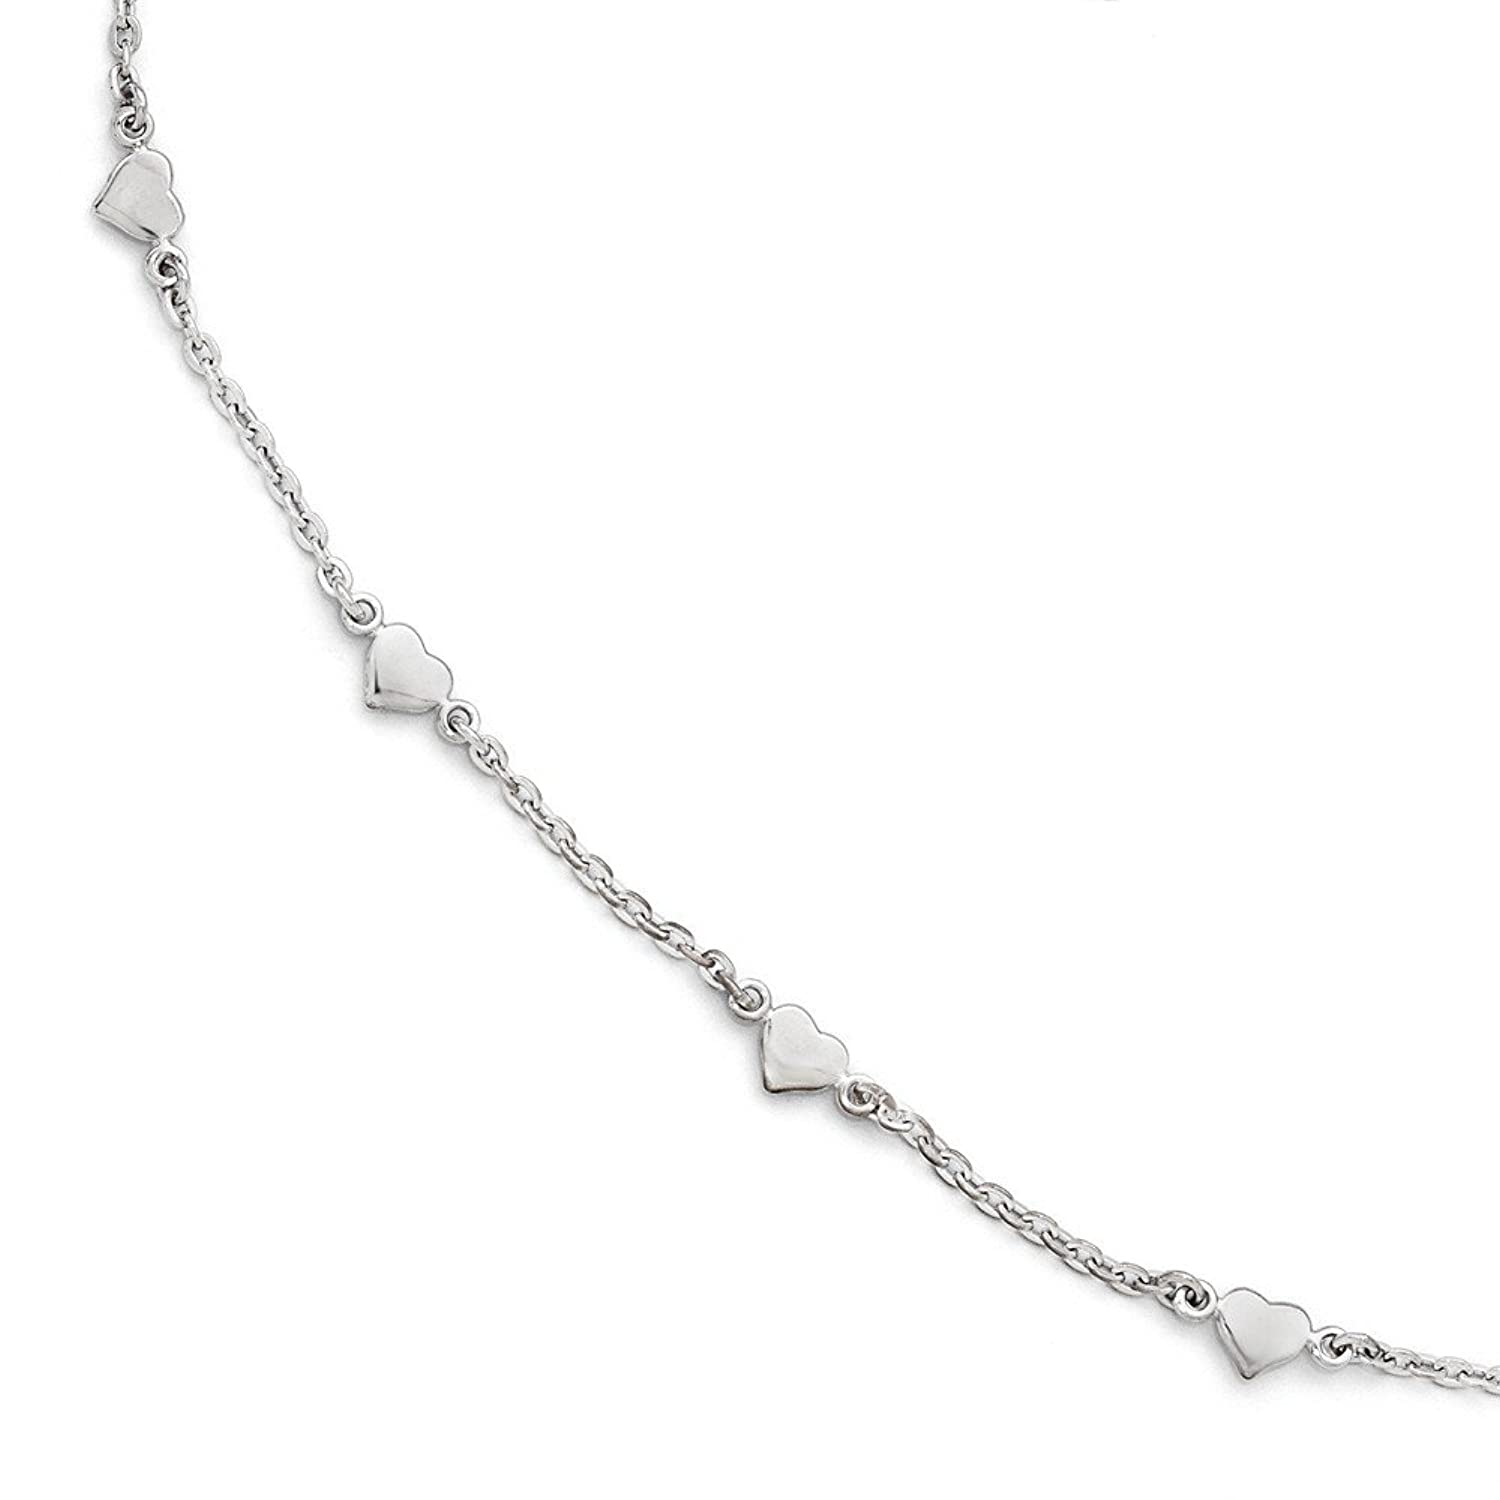 Solid Sterling Silver Polished Heart 9 with 1in extention - with Secure Lobster Lock Clasp (1.4mm)